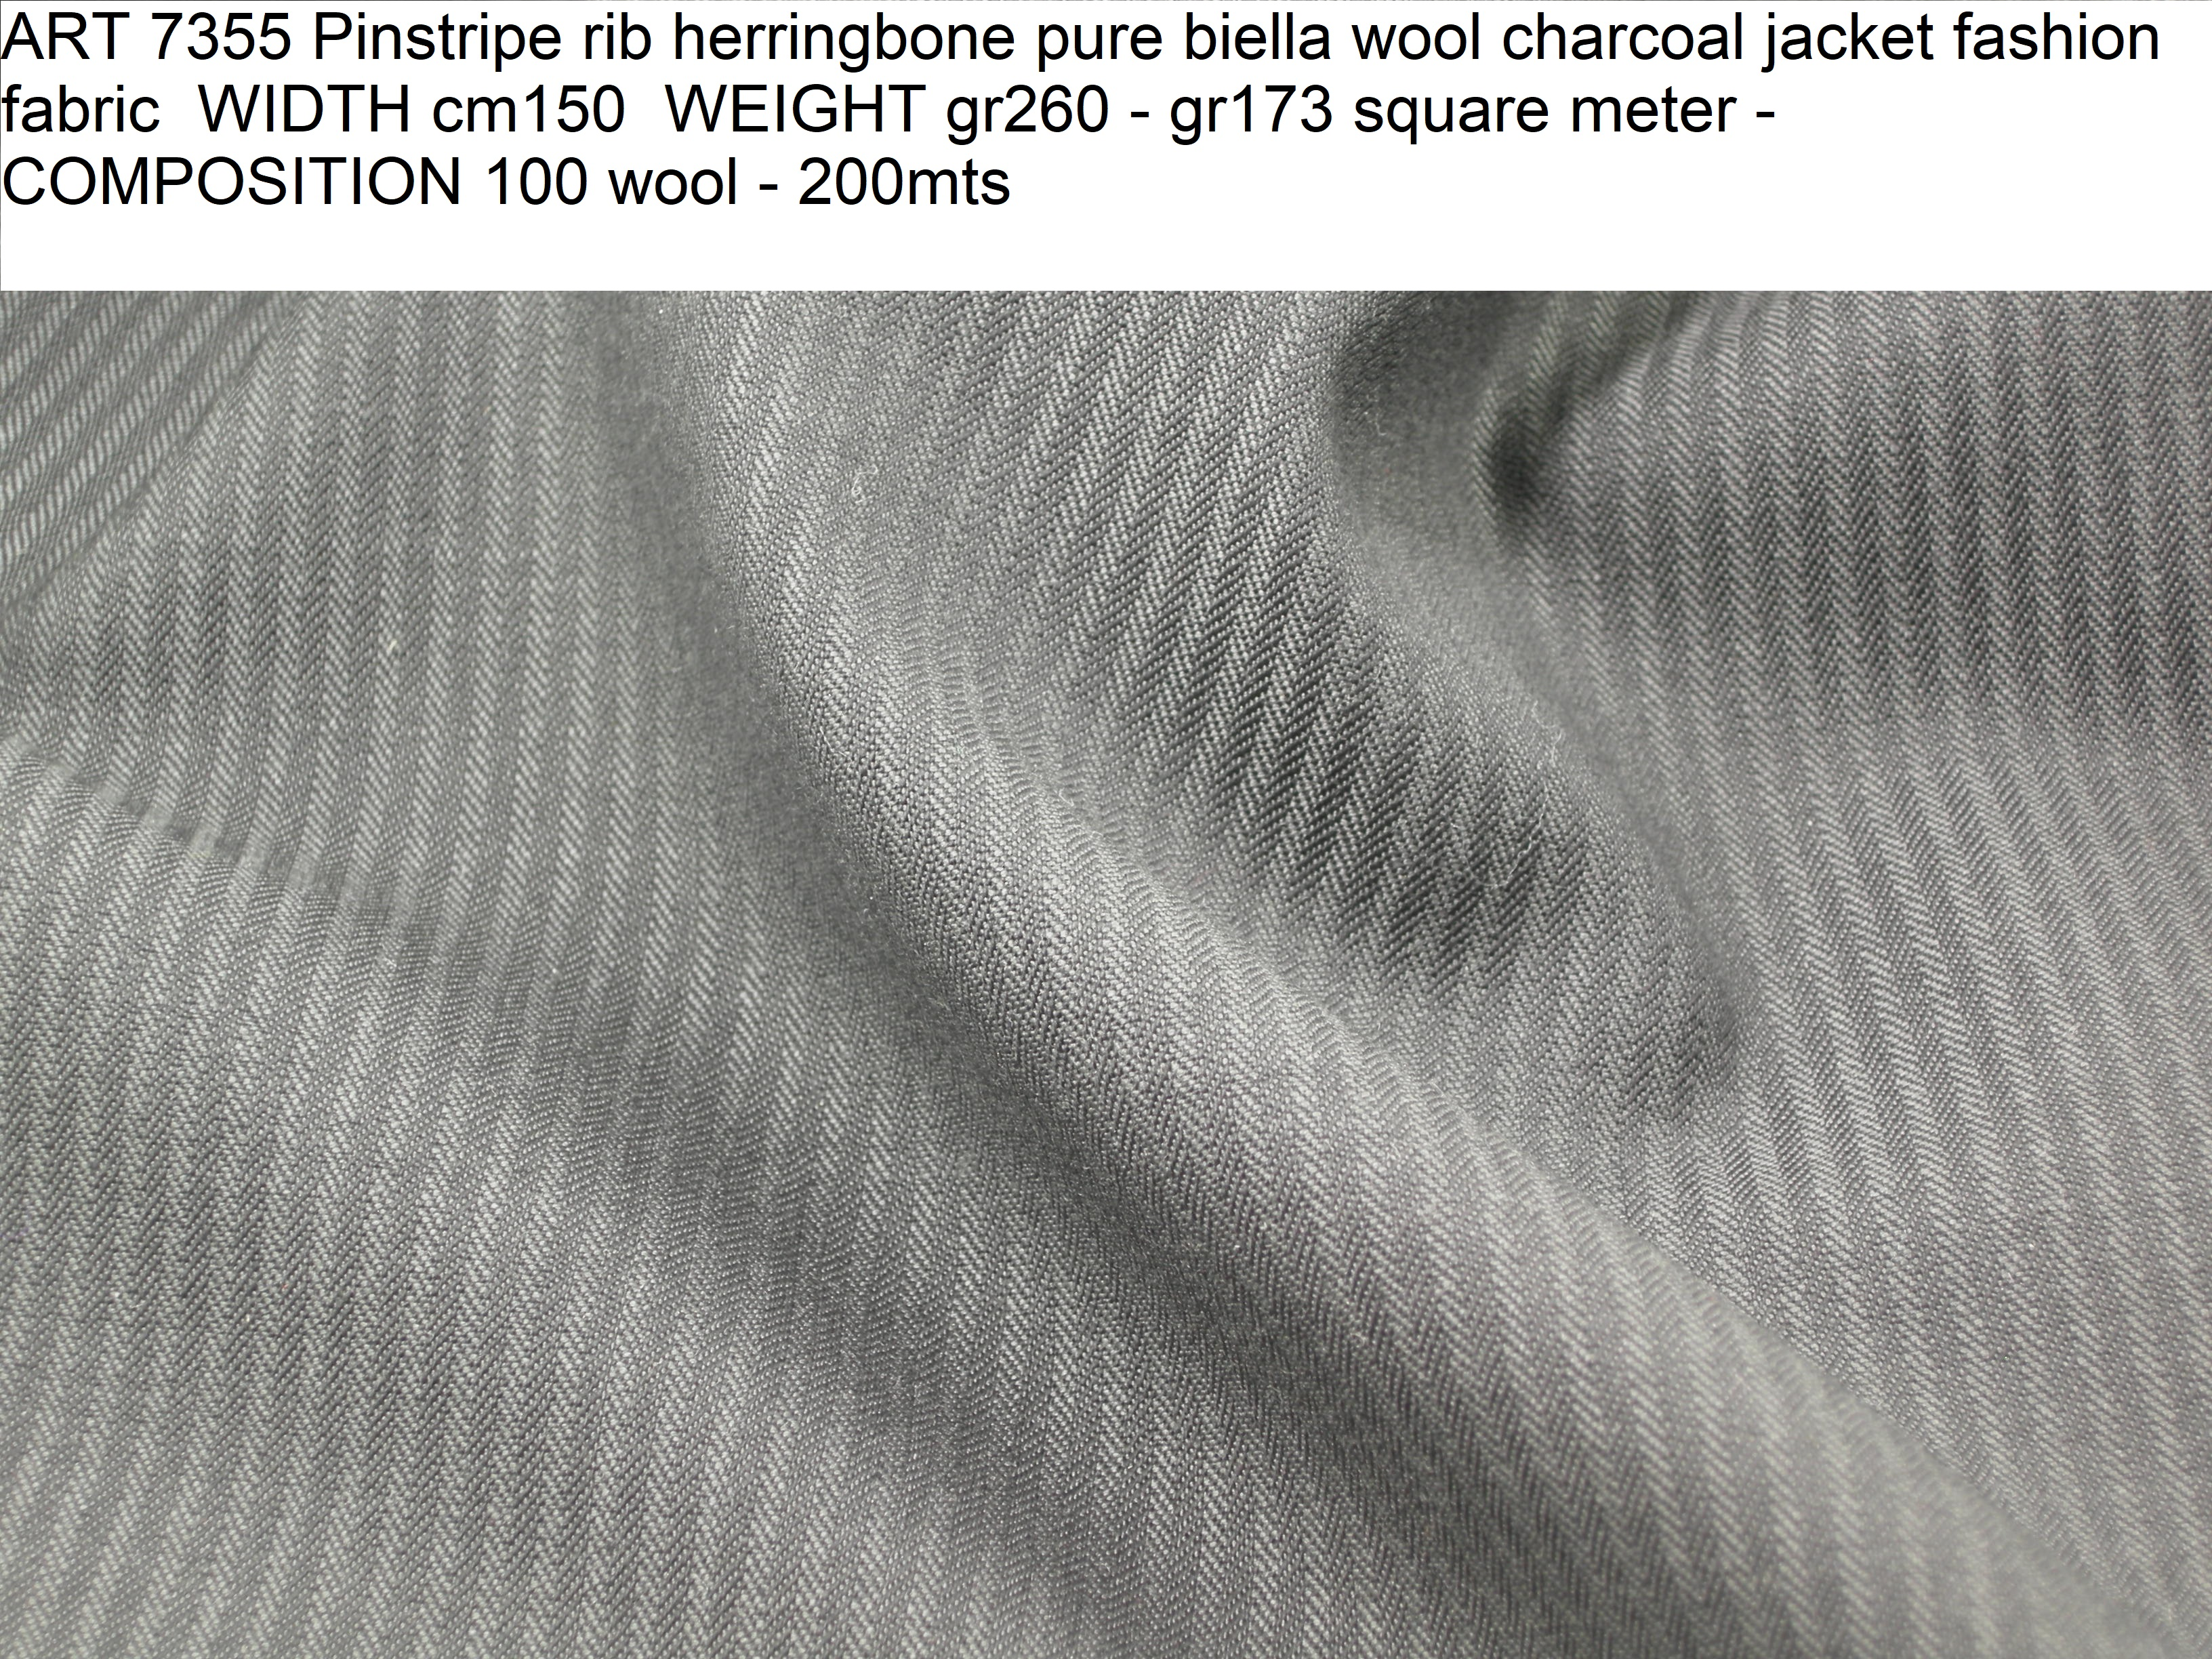 ART 7355 Pinstripe rib herringbone pure biella wool charcoal jacket fashion fabric WIDTH cm150 WEIGHT gr260 - gr173 square meter - COMPOSITION 100 wool - 200mts